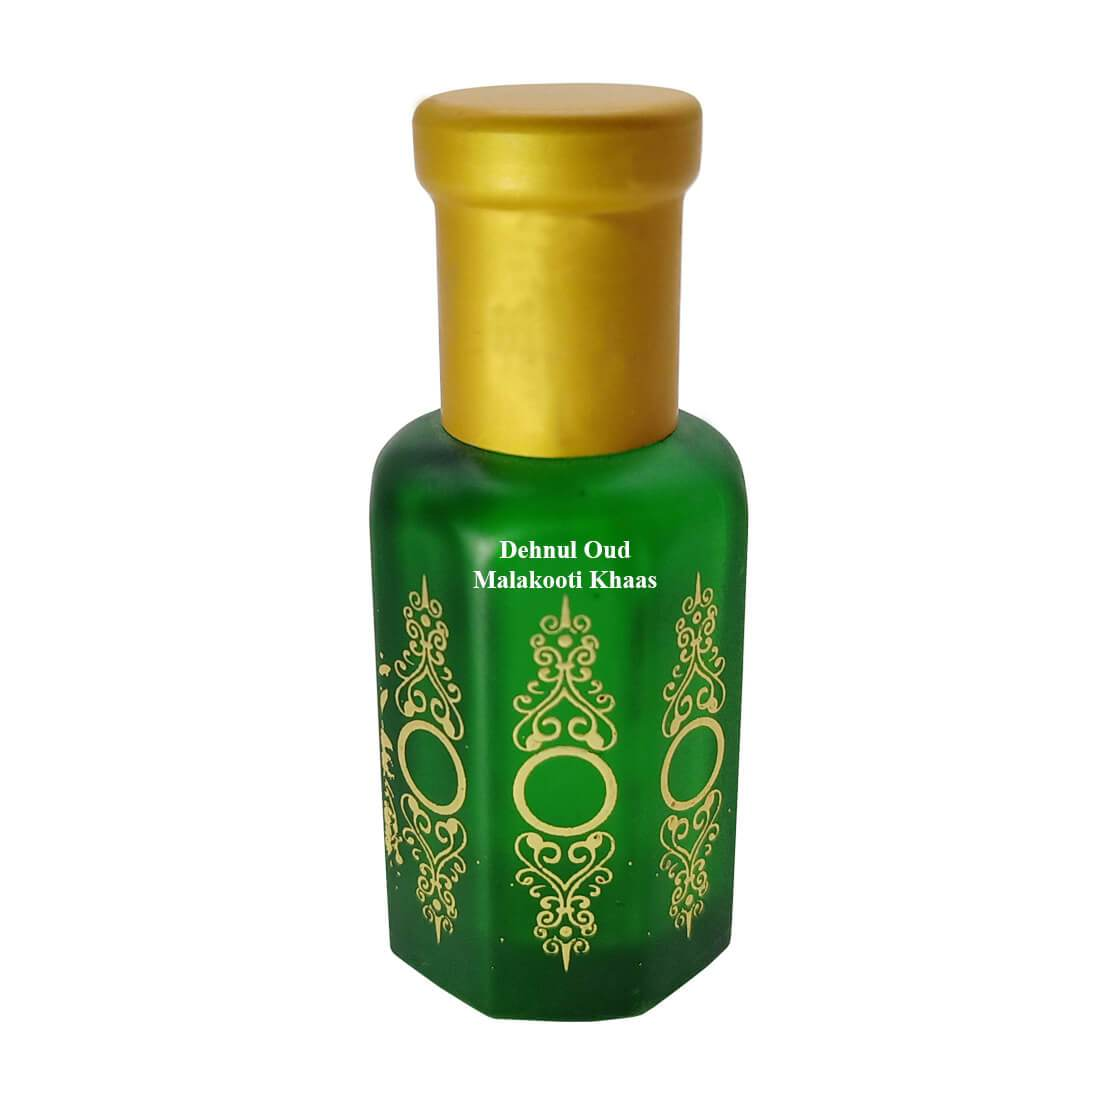 Dehnul Oud Malakooti Khaas Attar By Al Saud - 12ml